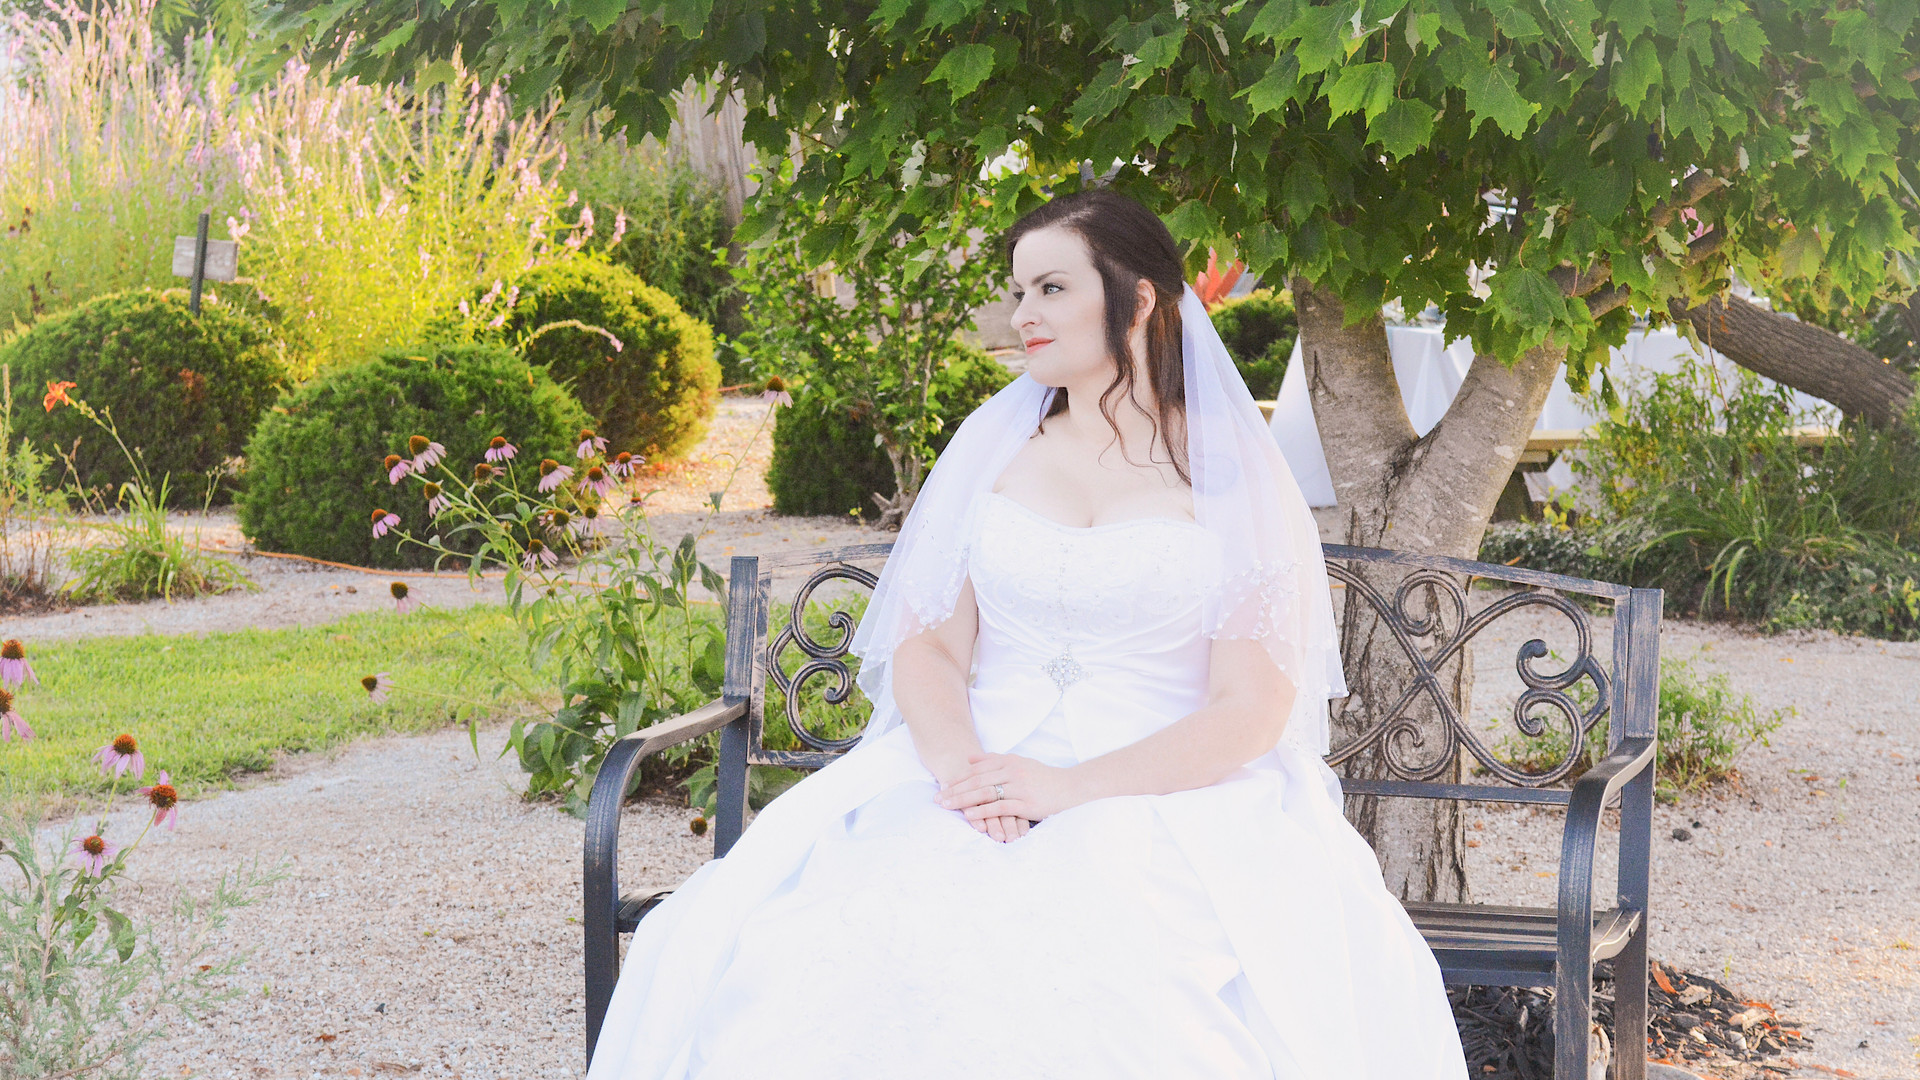 7-Bride seated on iron bench.jpg